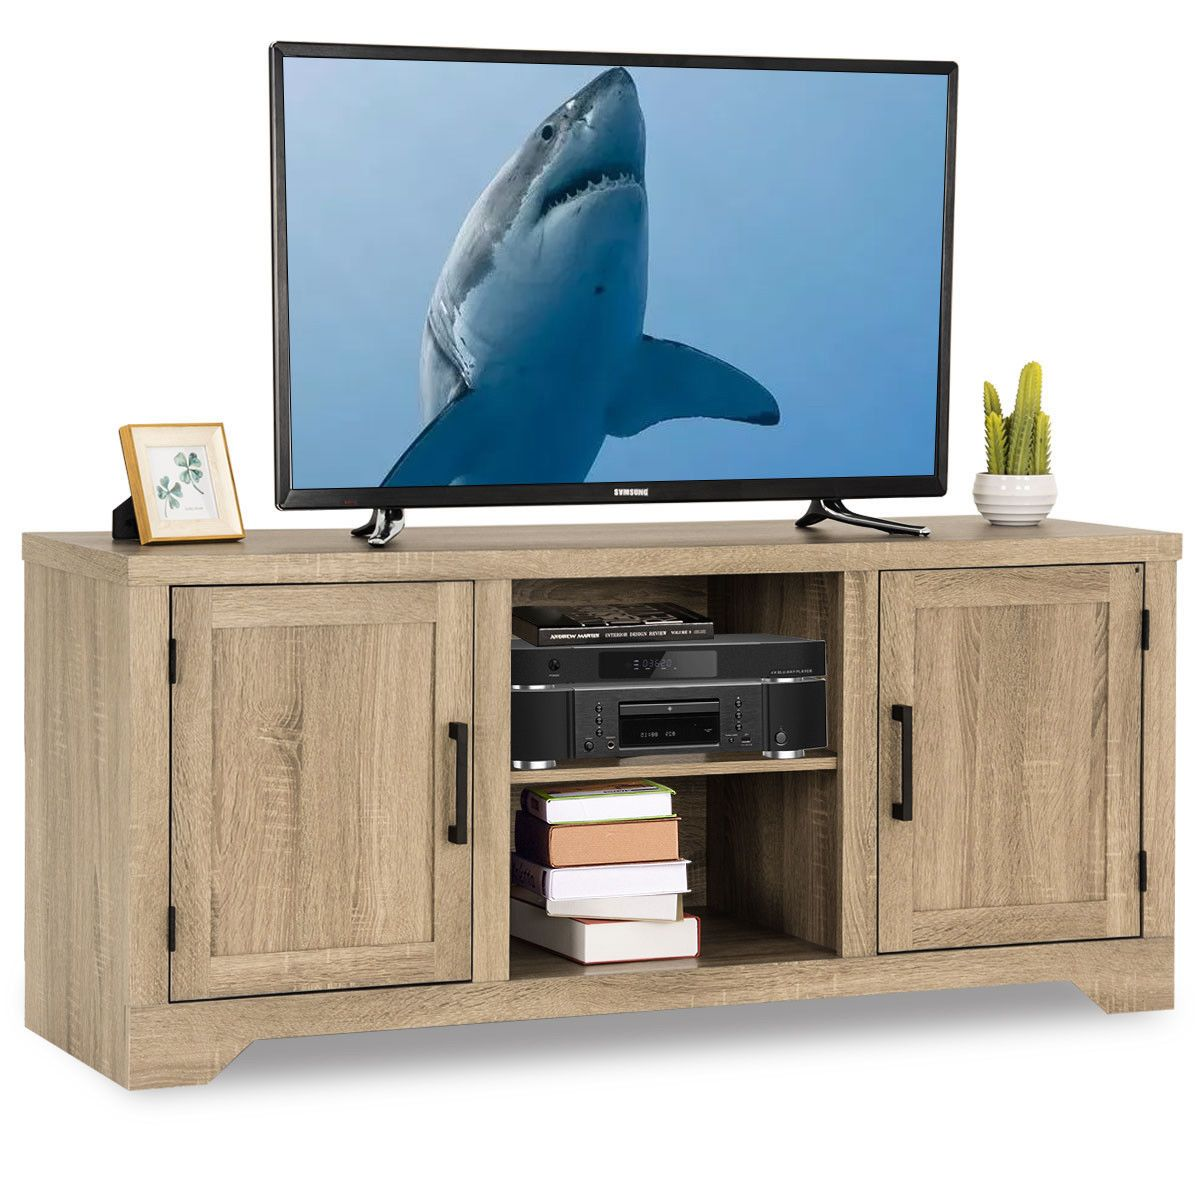 Free 2day shipping. Buy Gymax Rustic TV Stand